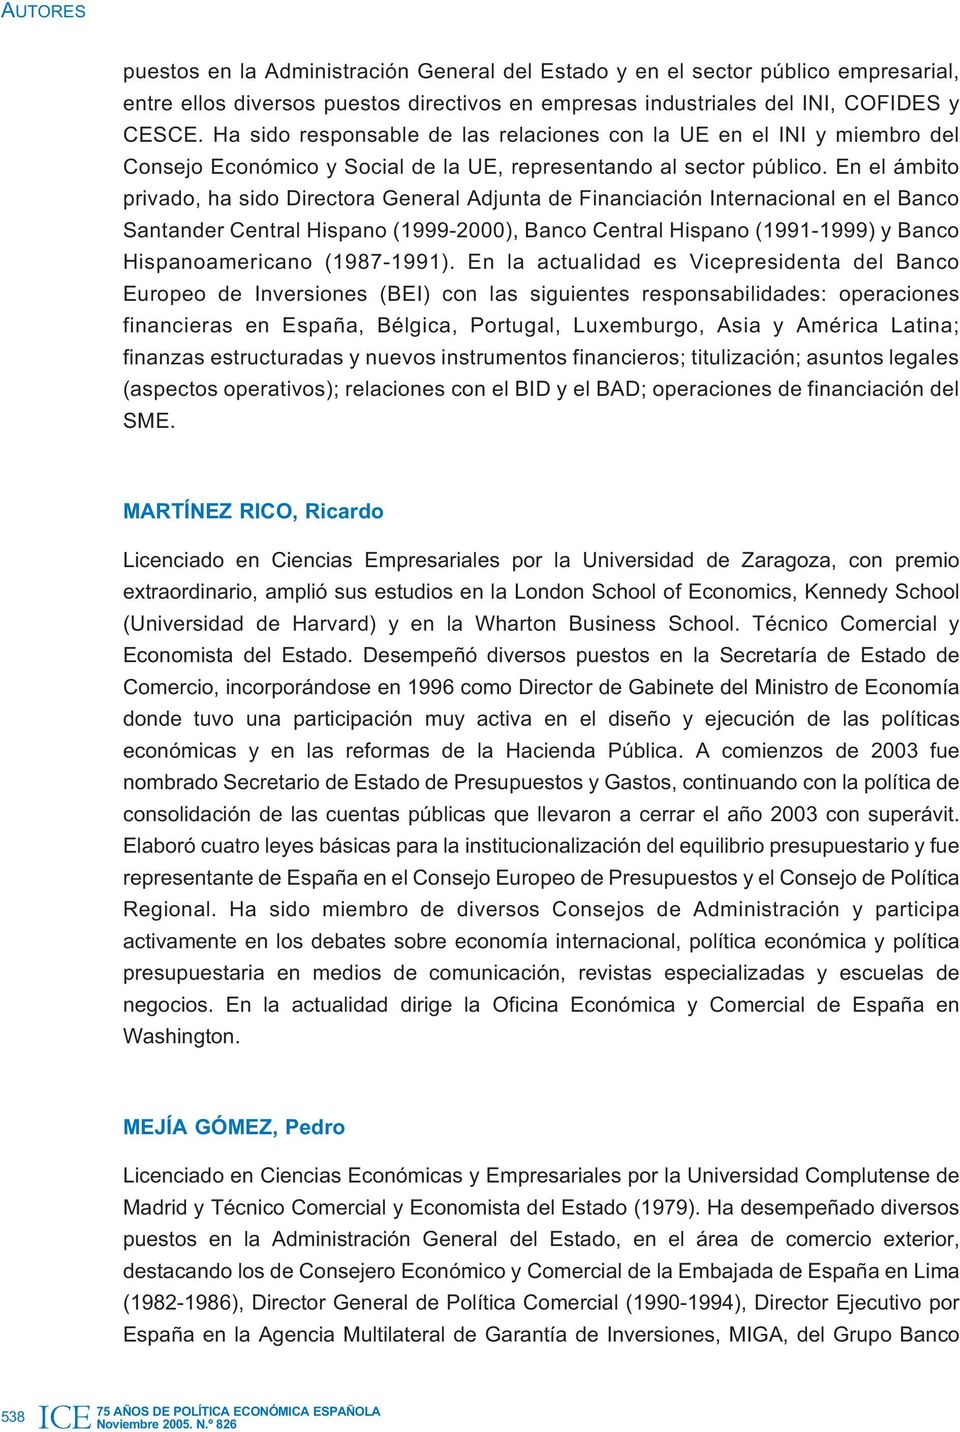 En el ámbito privado, ha sido Directora General Adjunta de Financiación Internacional en el Banco Santander Central Hispano (1999-2000), Banco Central Hispano (1991-1999) y Banco Hispanoamericano